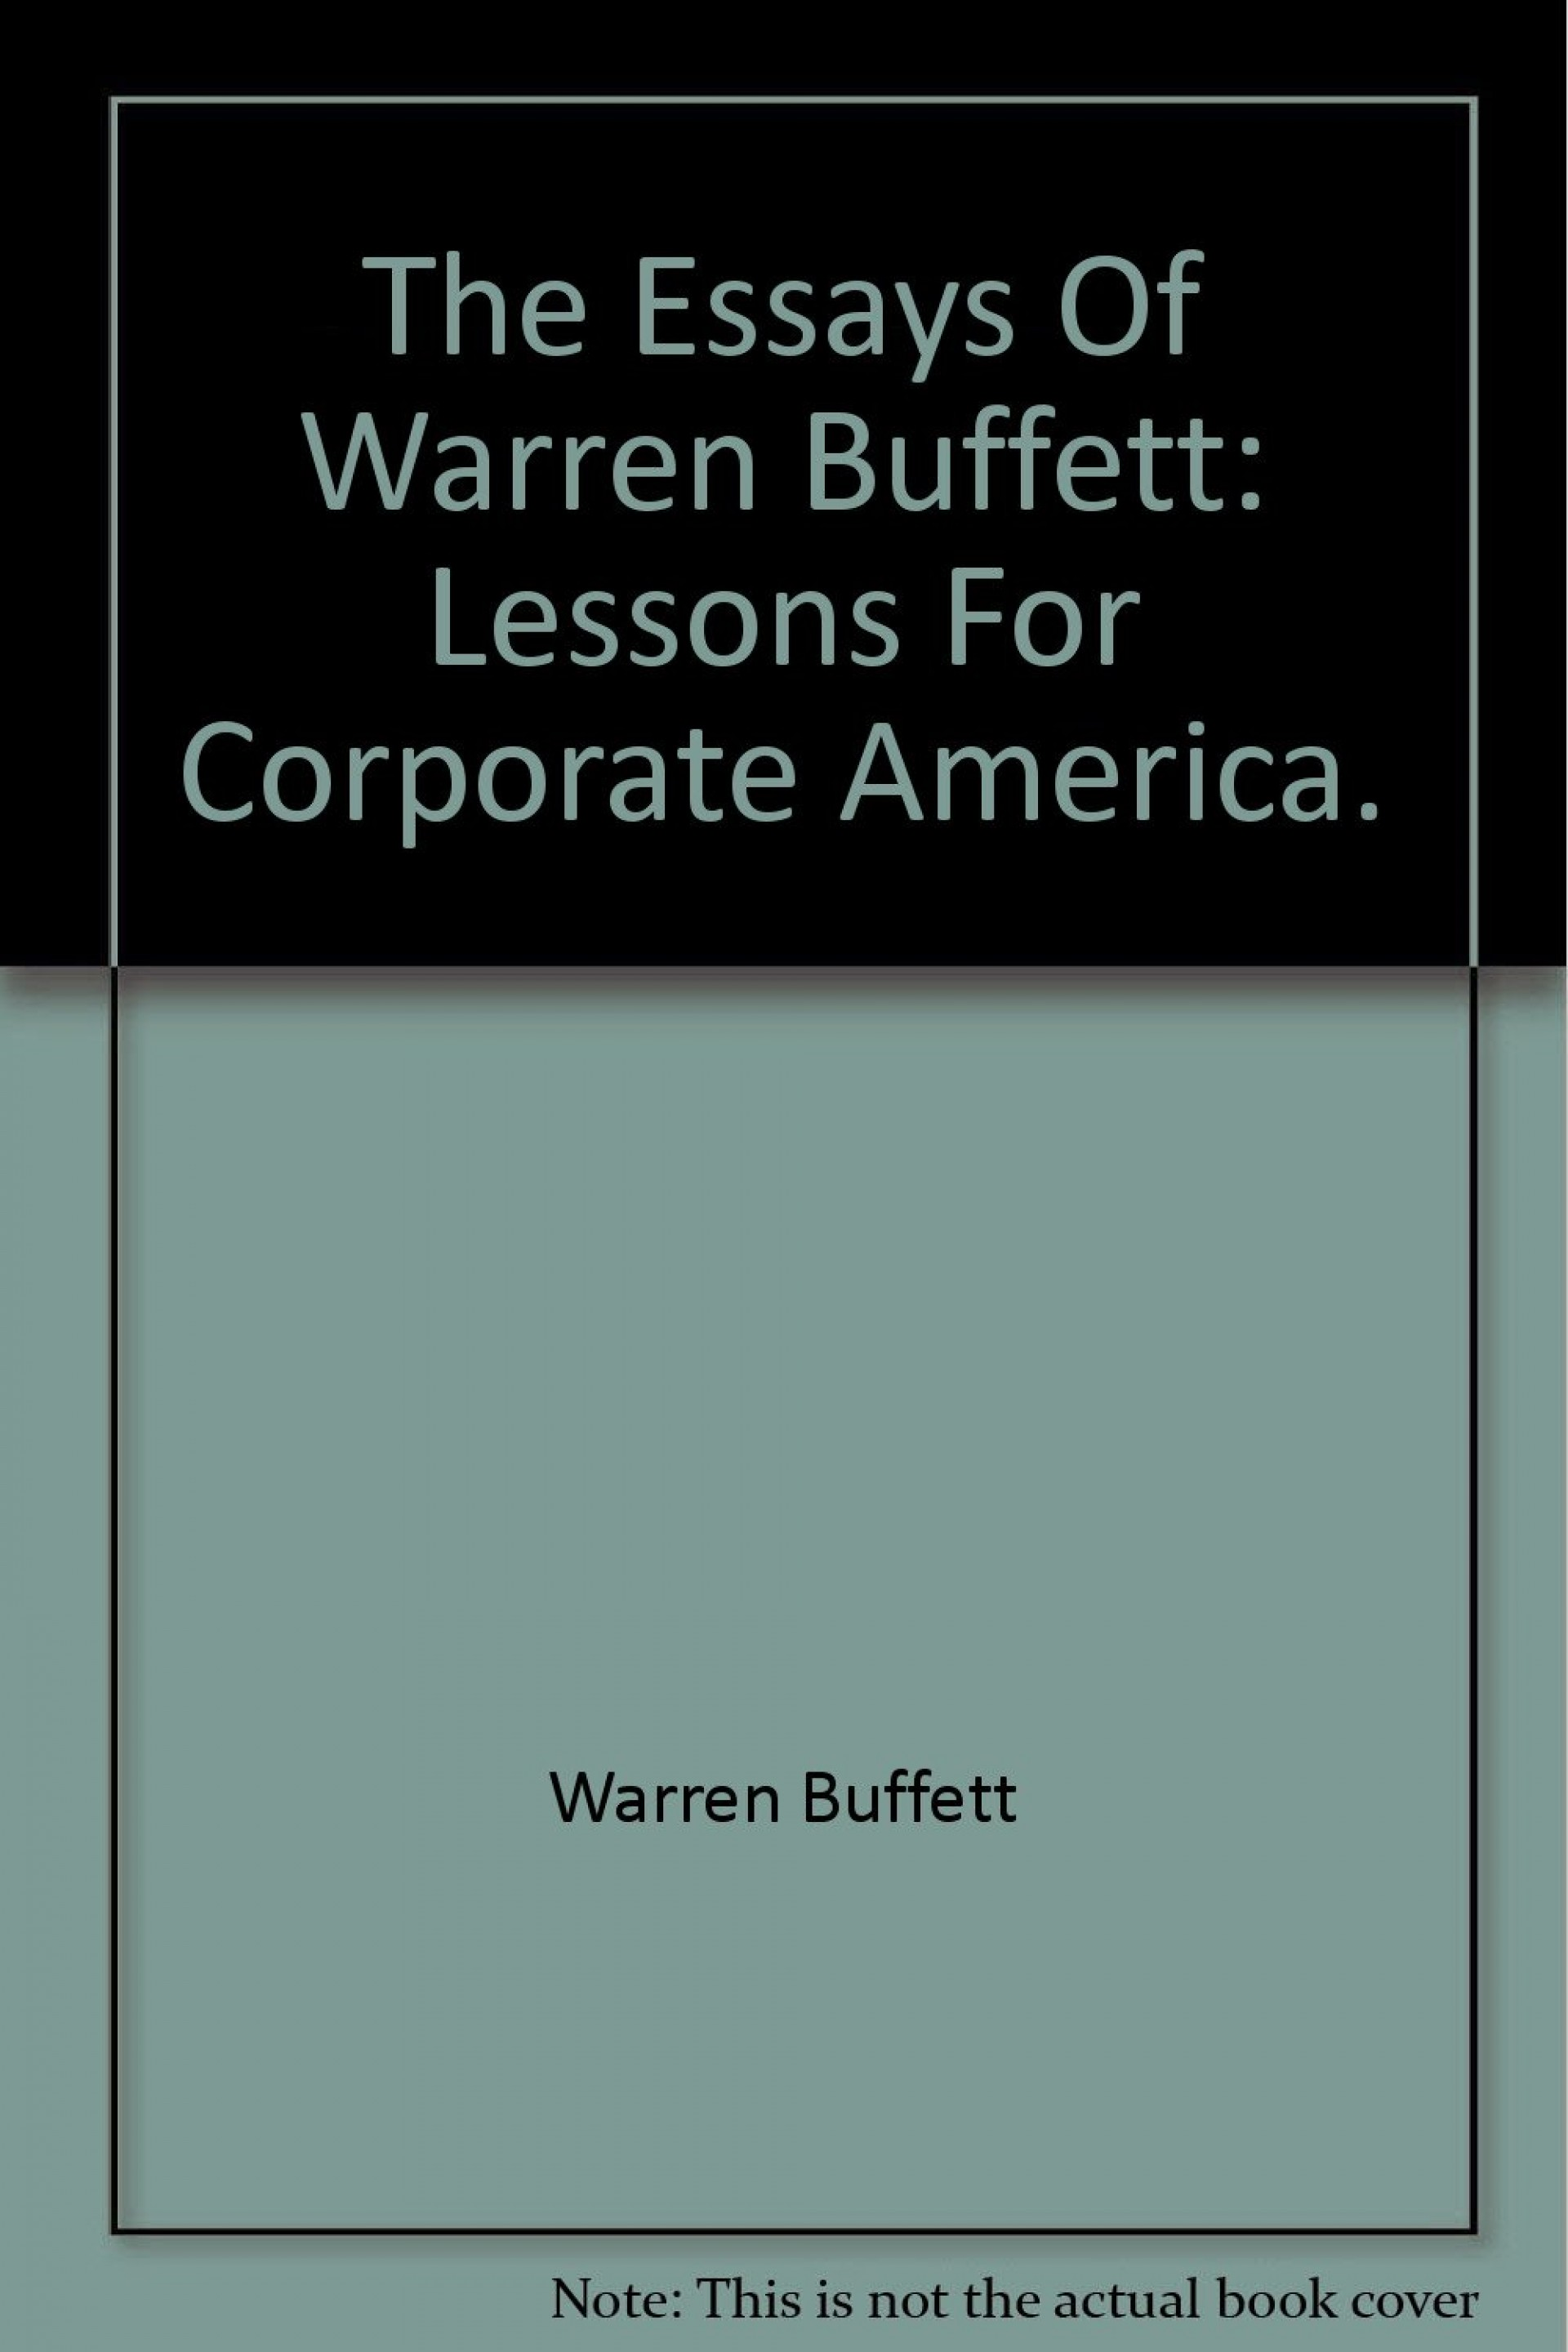 015 61wo12biiixl The Essays Of Warren Buffett Lessons For Investors And Managers Essay Striking 4th Edition Free Pdf 1920